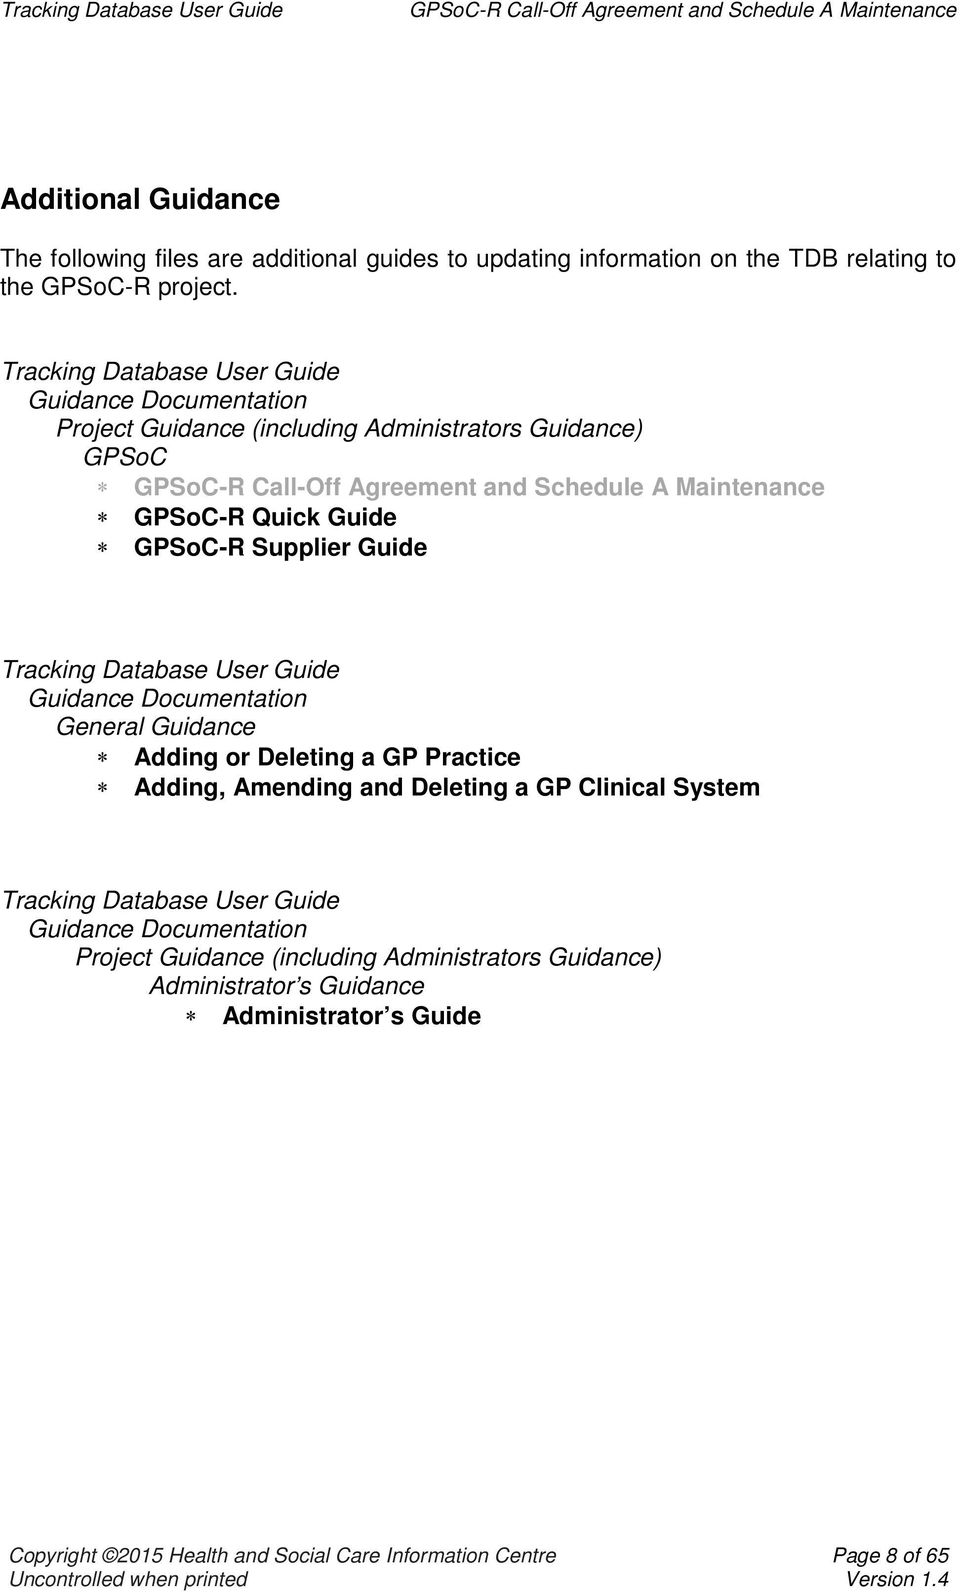 Guide Tracking Database User Guide Guidance Documentation General Guidance Adding or Deleting a GP Practice Adding, Amending and Deleting a GP